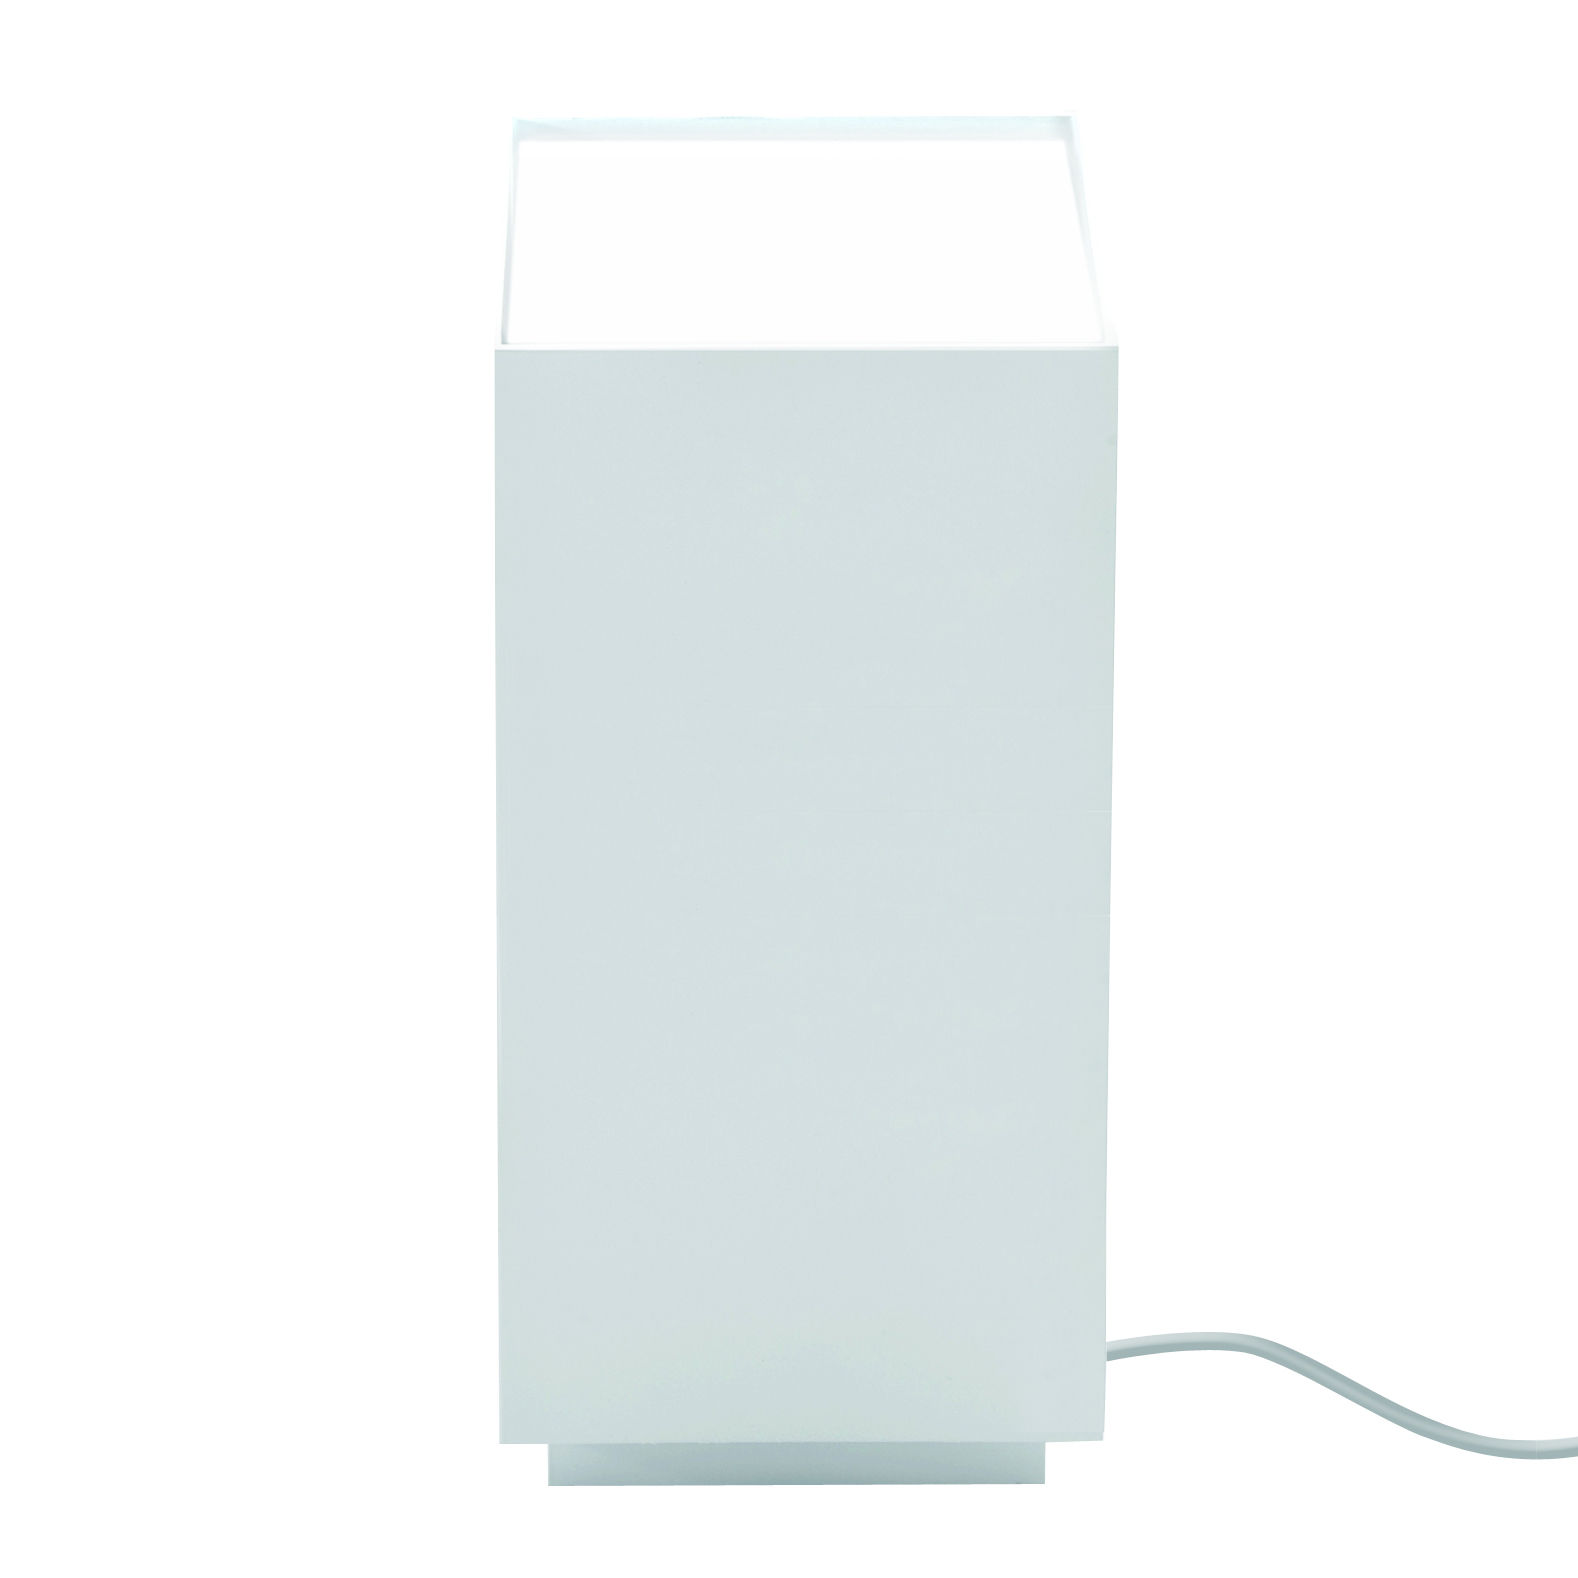 Lighting - Table Lamps - Prisma Table lamp - LED - H 26 cm by Nemo - White - Extruded aluminium, Polycarbonate